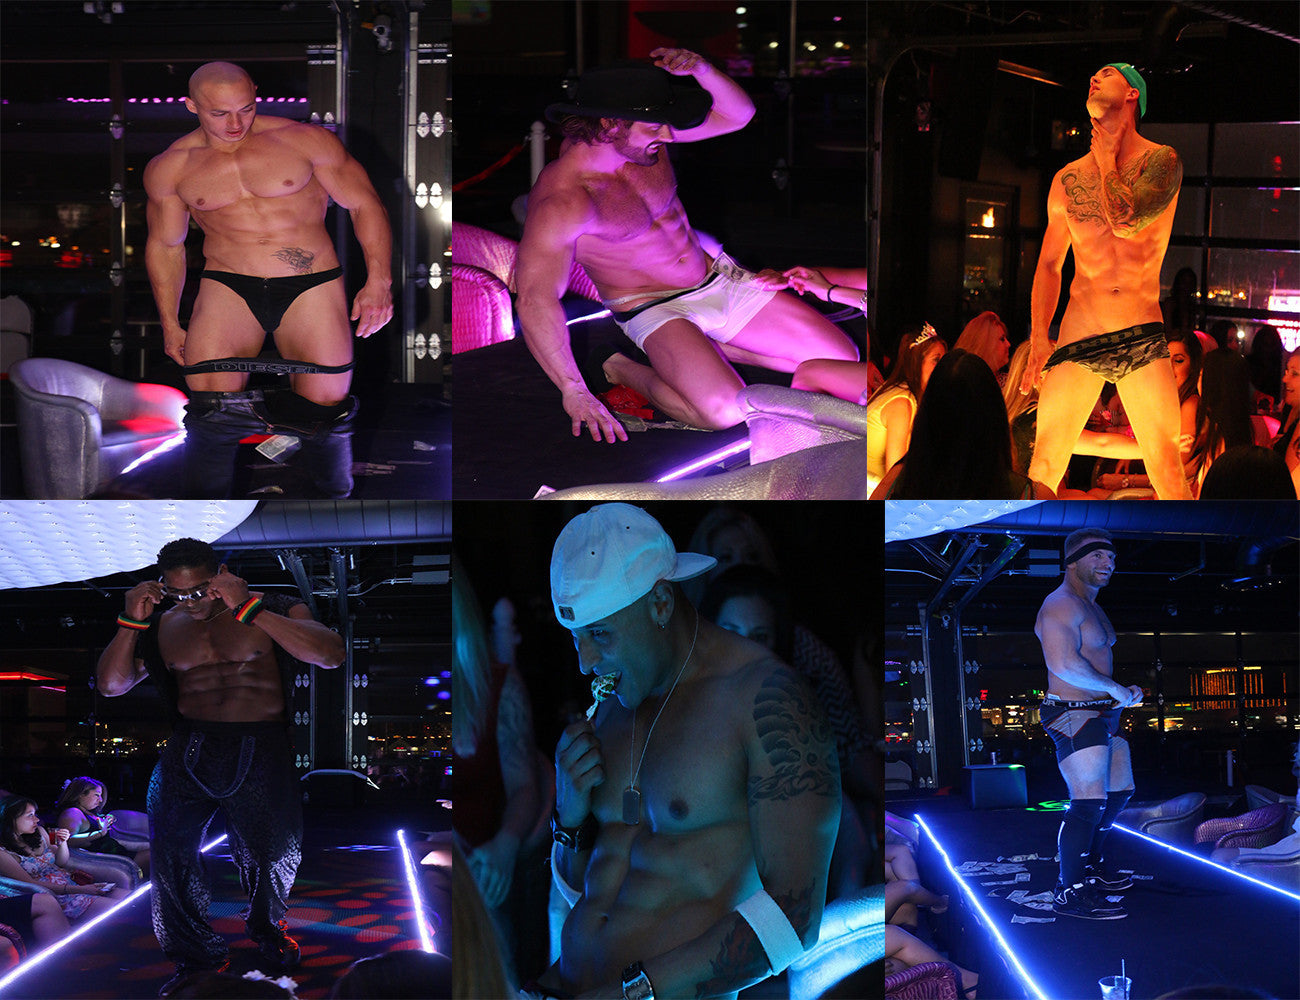 gay strip clubs las vegas jpg 1500x1000